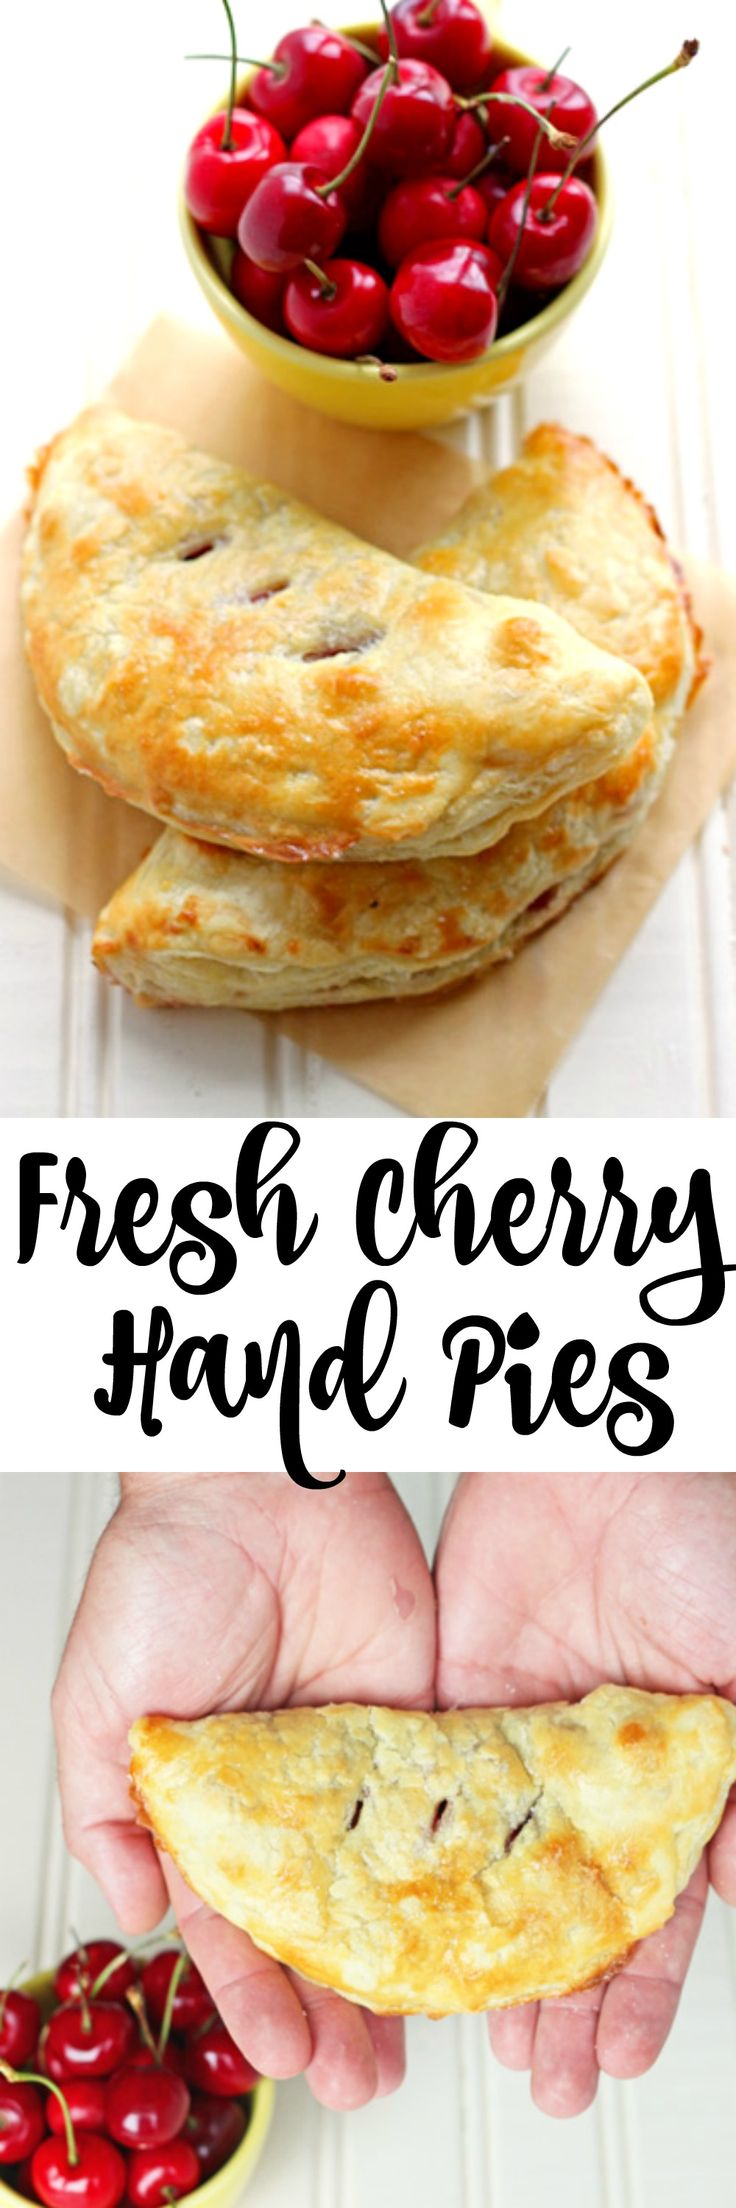 An easy dessert to use up fresh cherries. Use store-bought pastry, and have pies in 20 minutes!